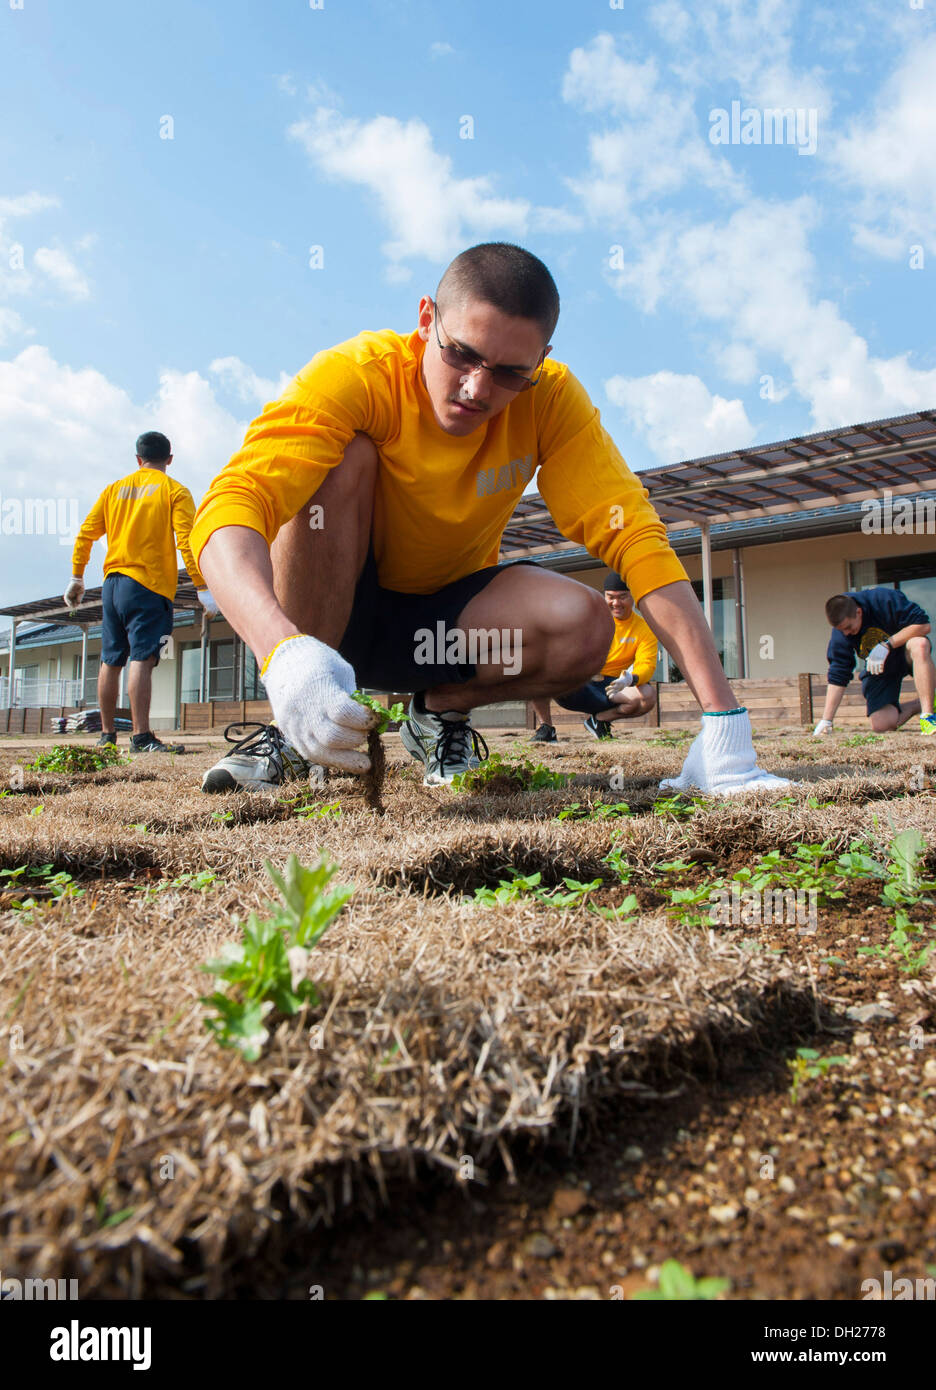 SASEBO, Japan (Oct. 26, 2013) Religious Programs Specialist Erik Pautsch, assigned to the amphibious assault ship USS Bonhomme Richard (LHD 6), picks weeds during a volunteer service project at Kain-so Nursing Home. Bonhomme Richard is the lead ship of th - Stock Image